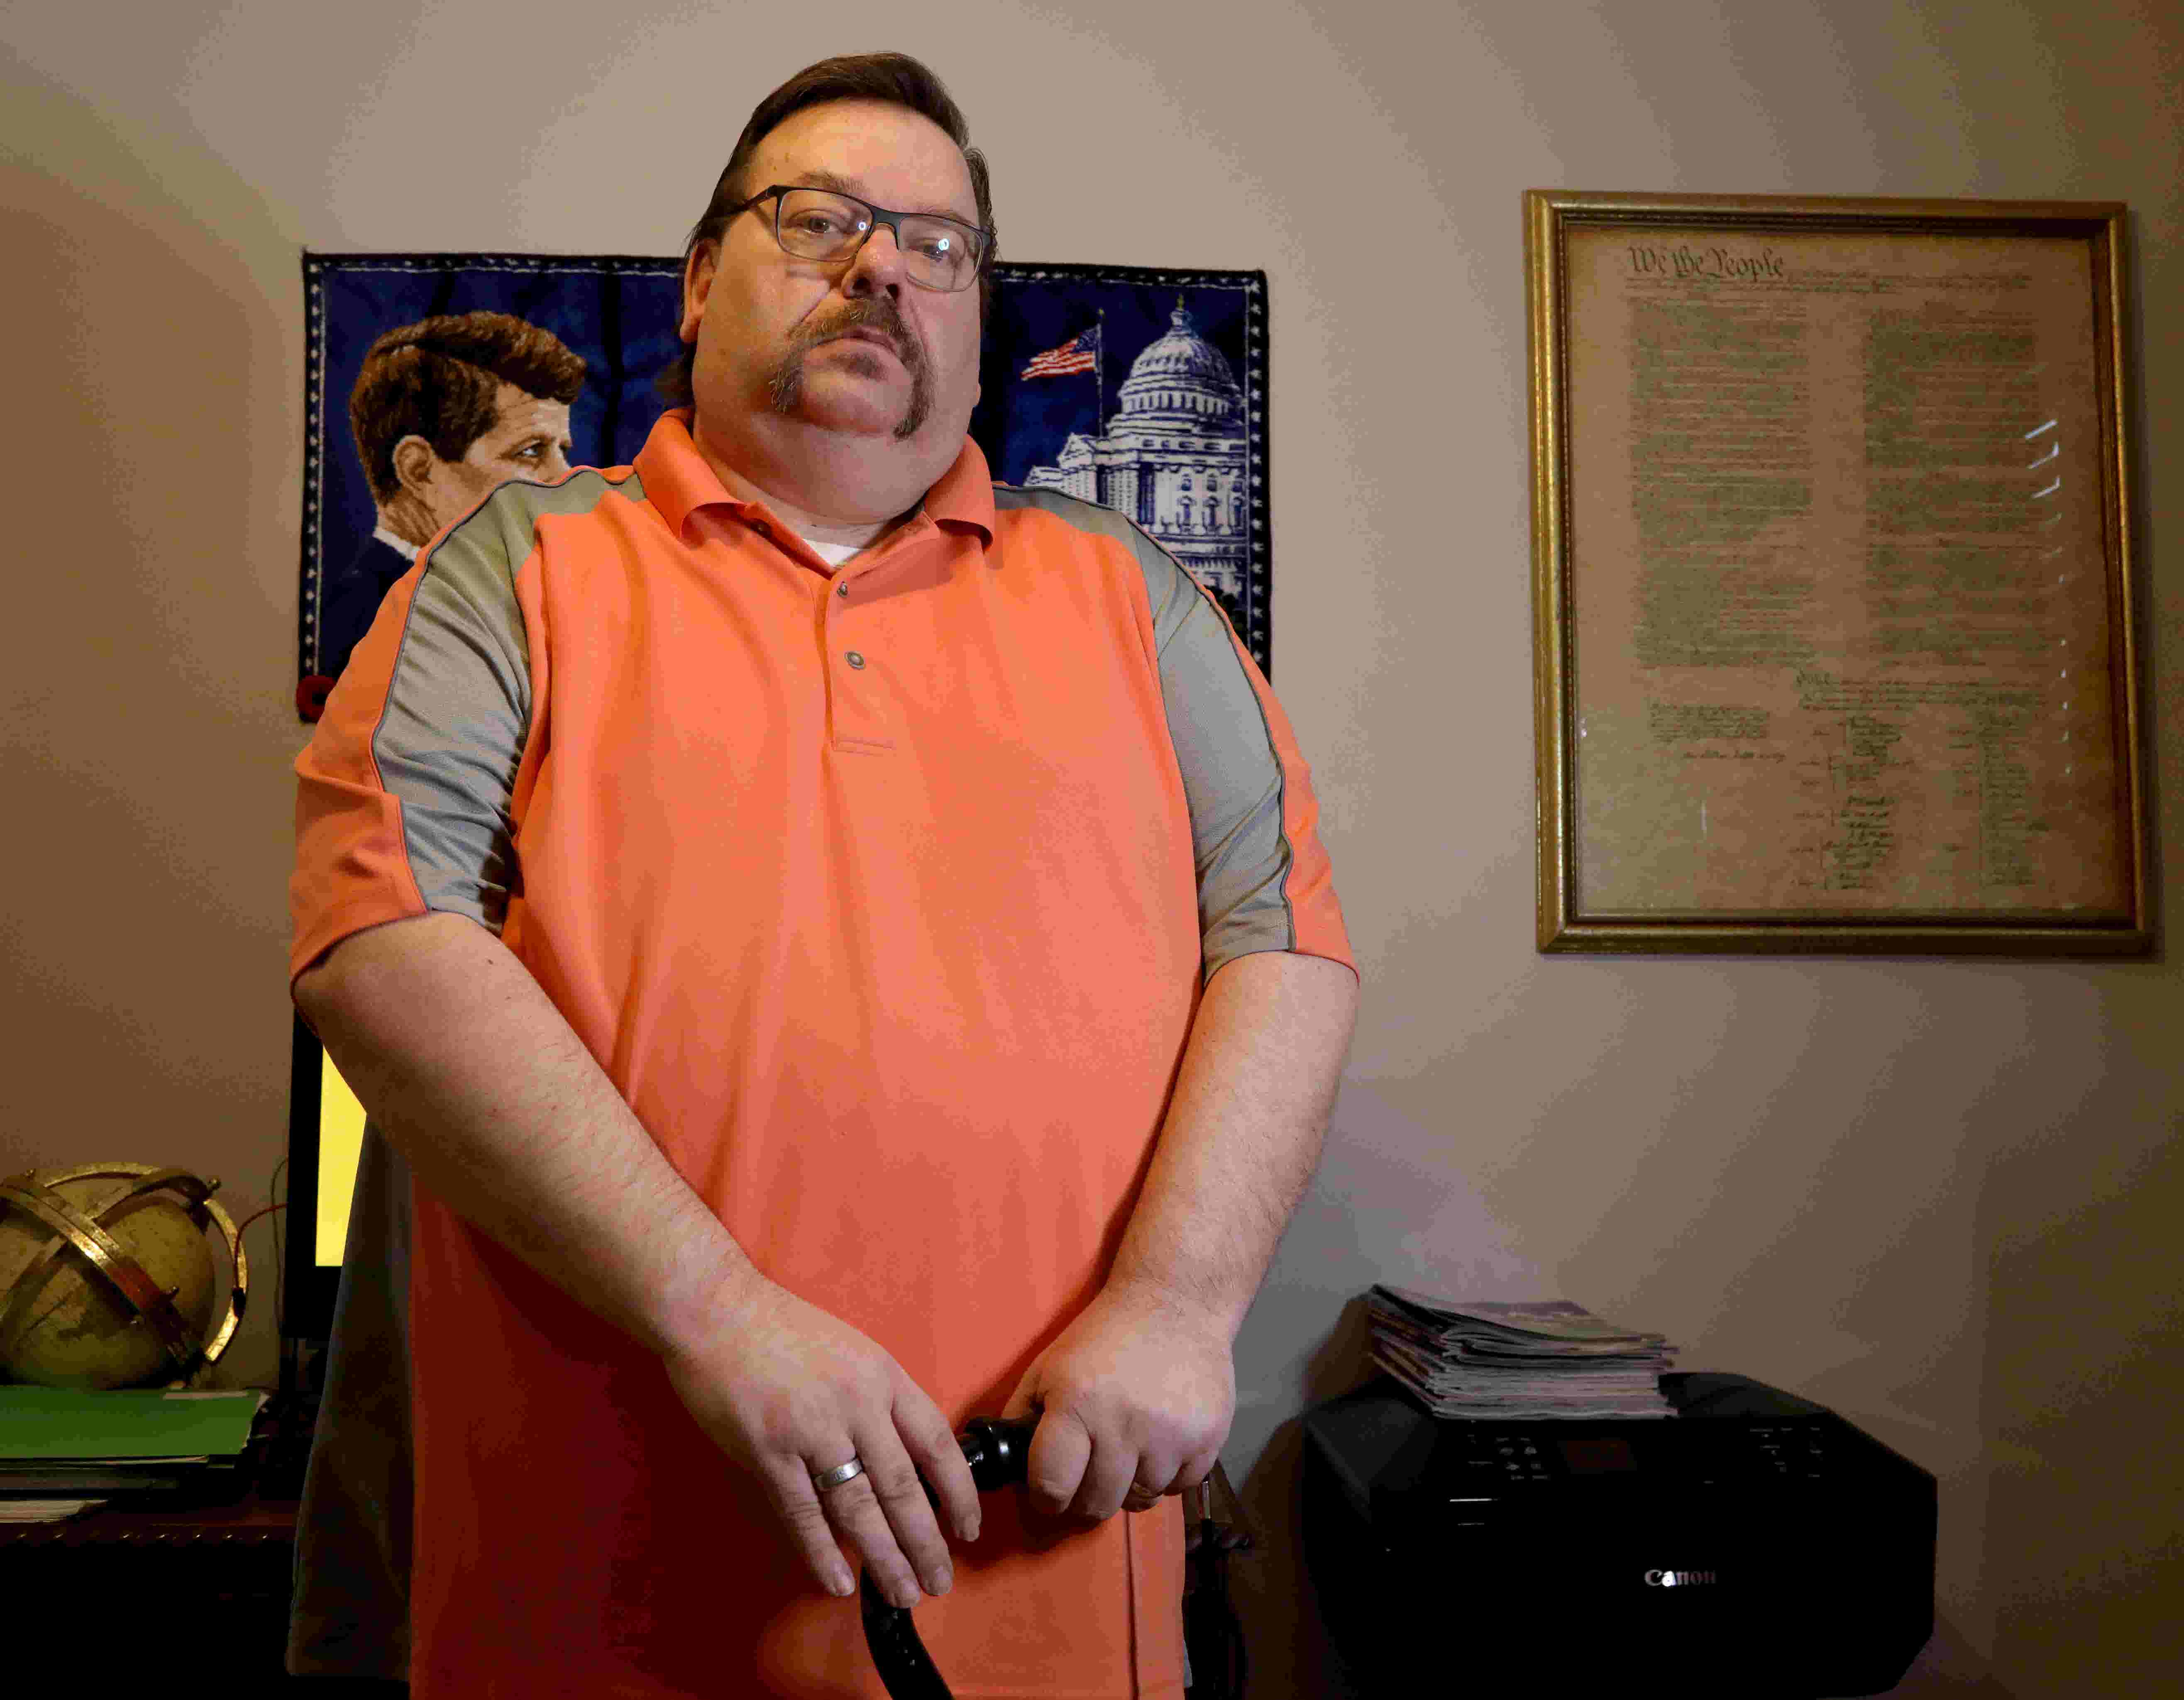 Taylor treasurer, home on disability, finds pay gone, job in jeopardy